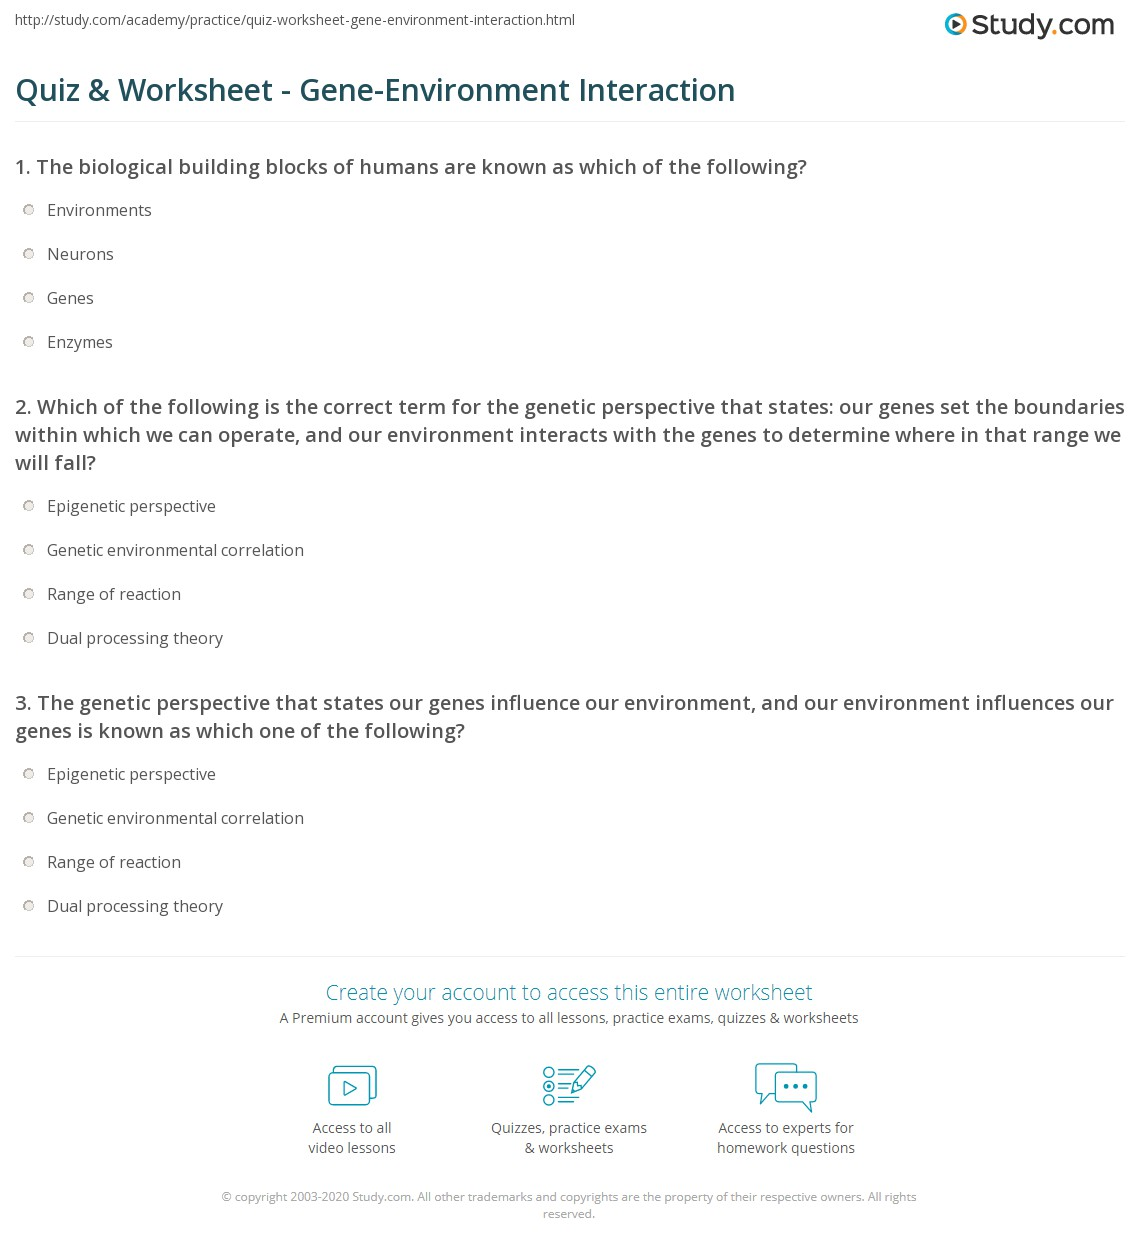 Quiz & Worksheet - Gene-Environment Interaction | Study.com